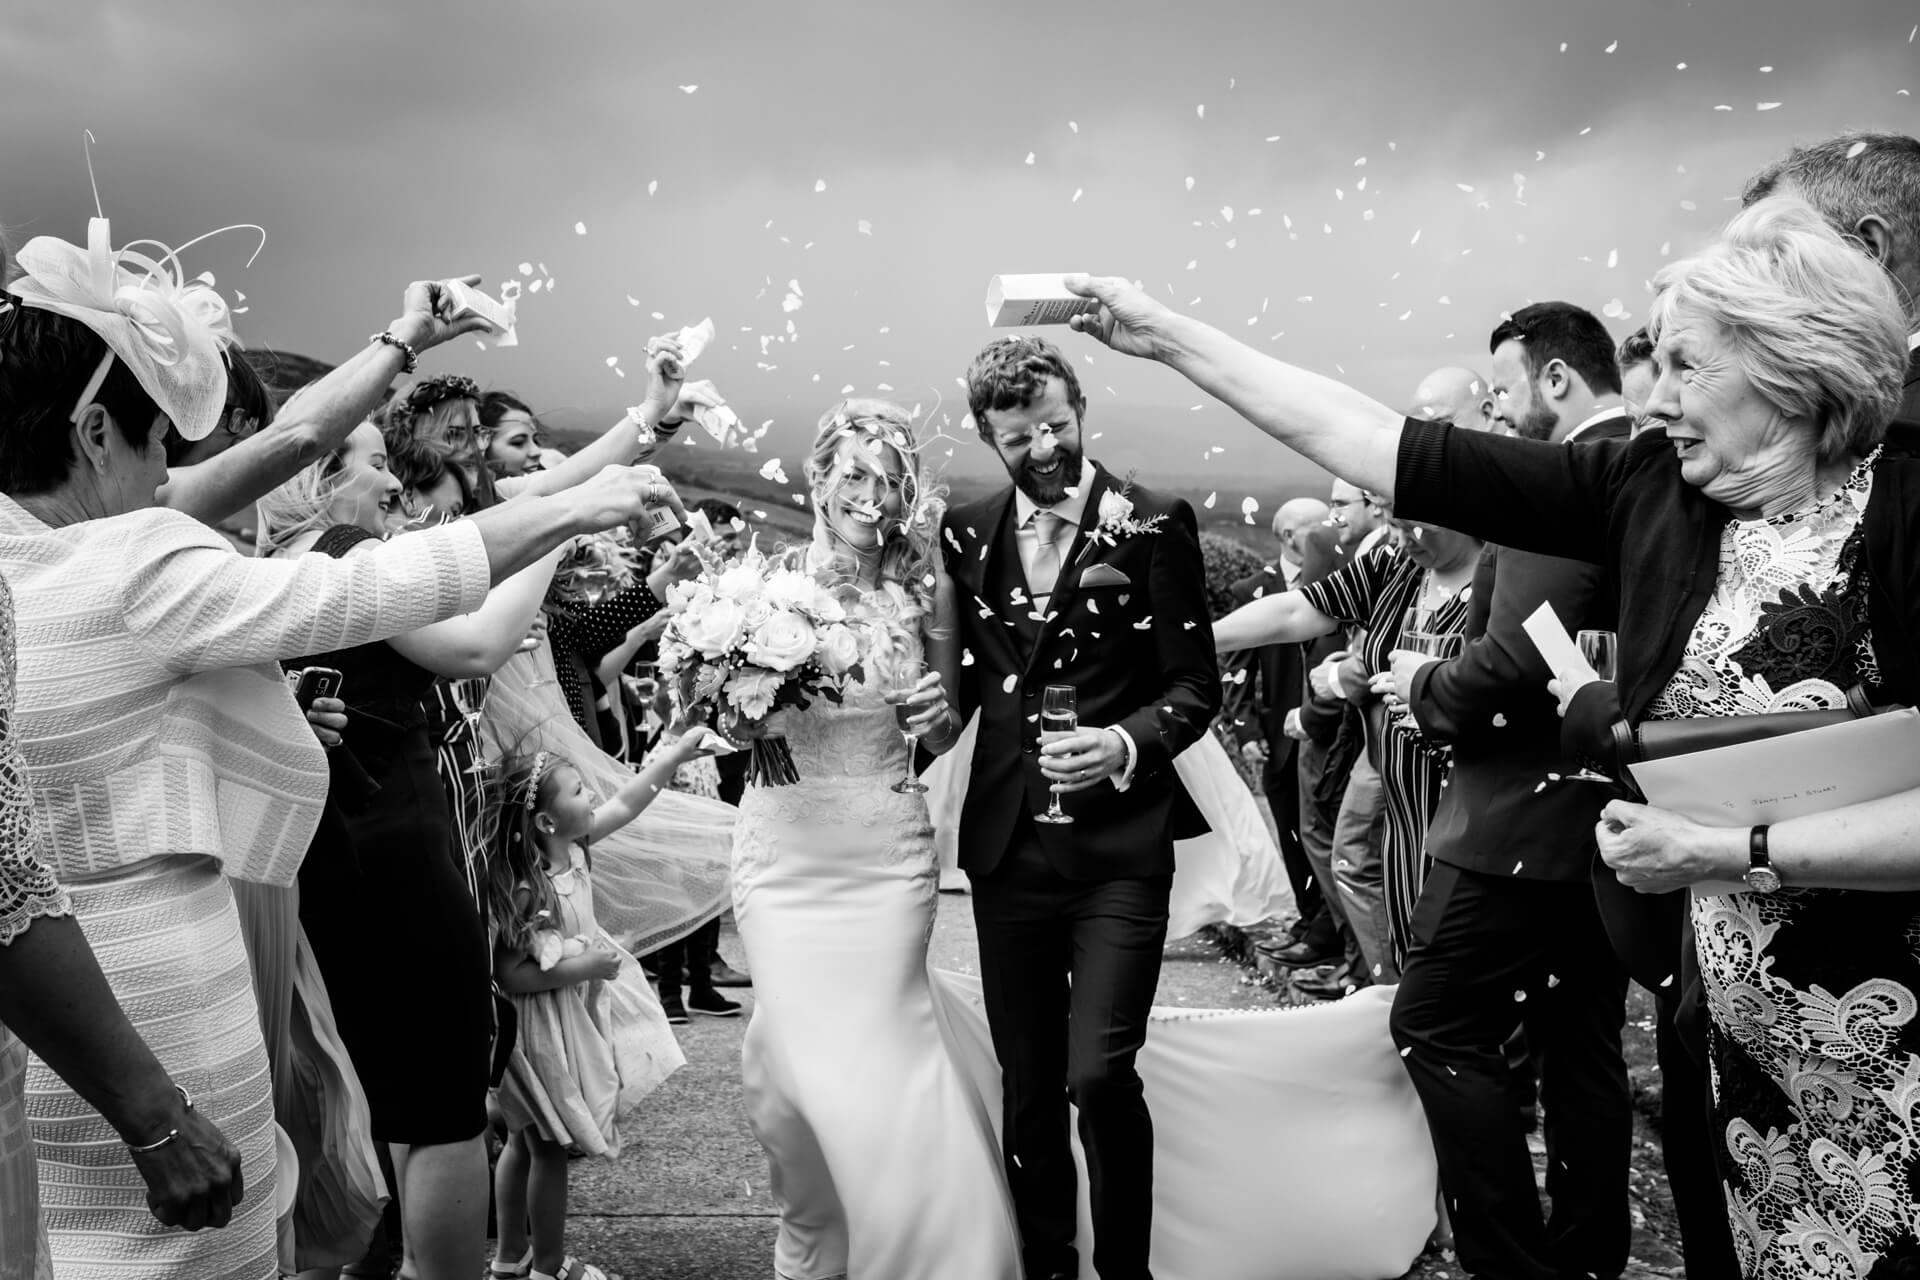 windblown wedding couple being showered with confetti